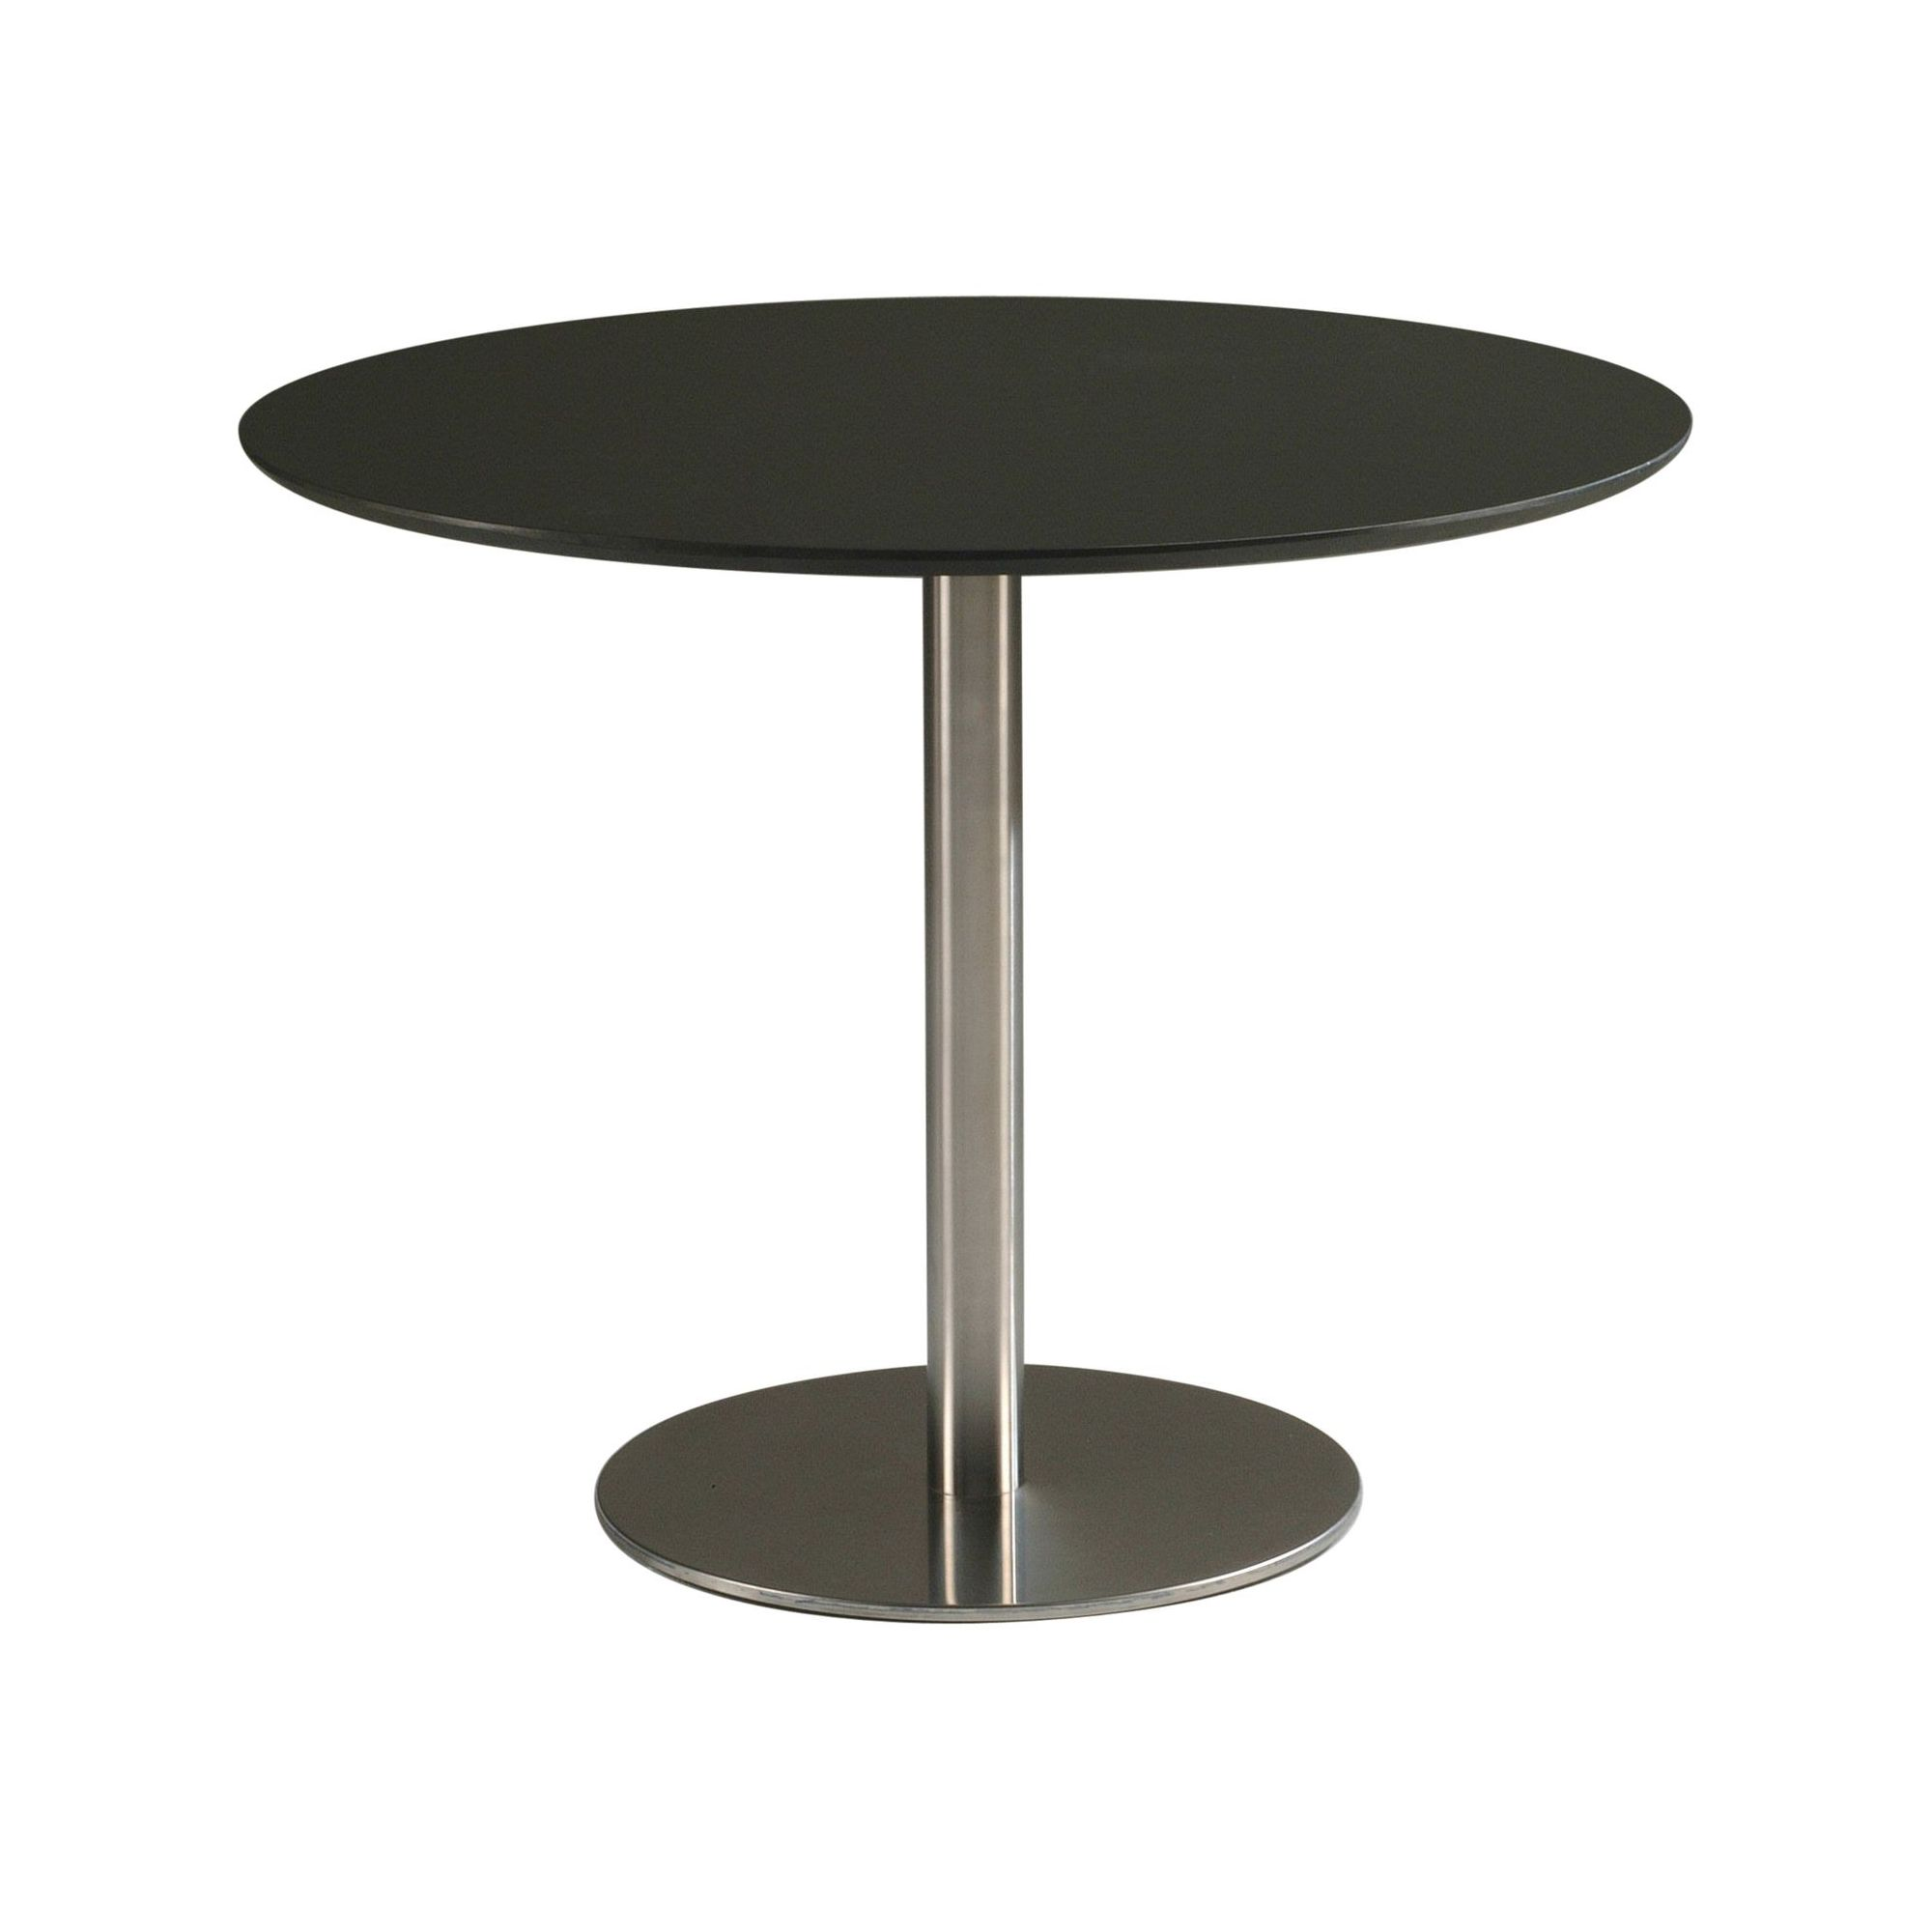 round kitchen casual dining table 80 cm black glass features round